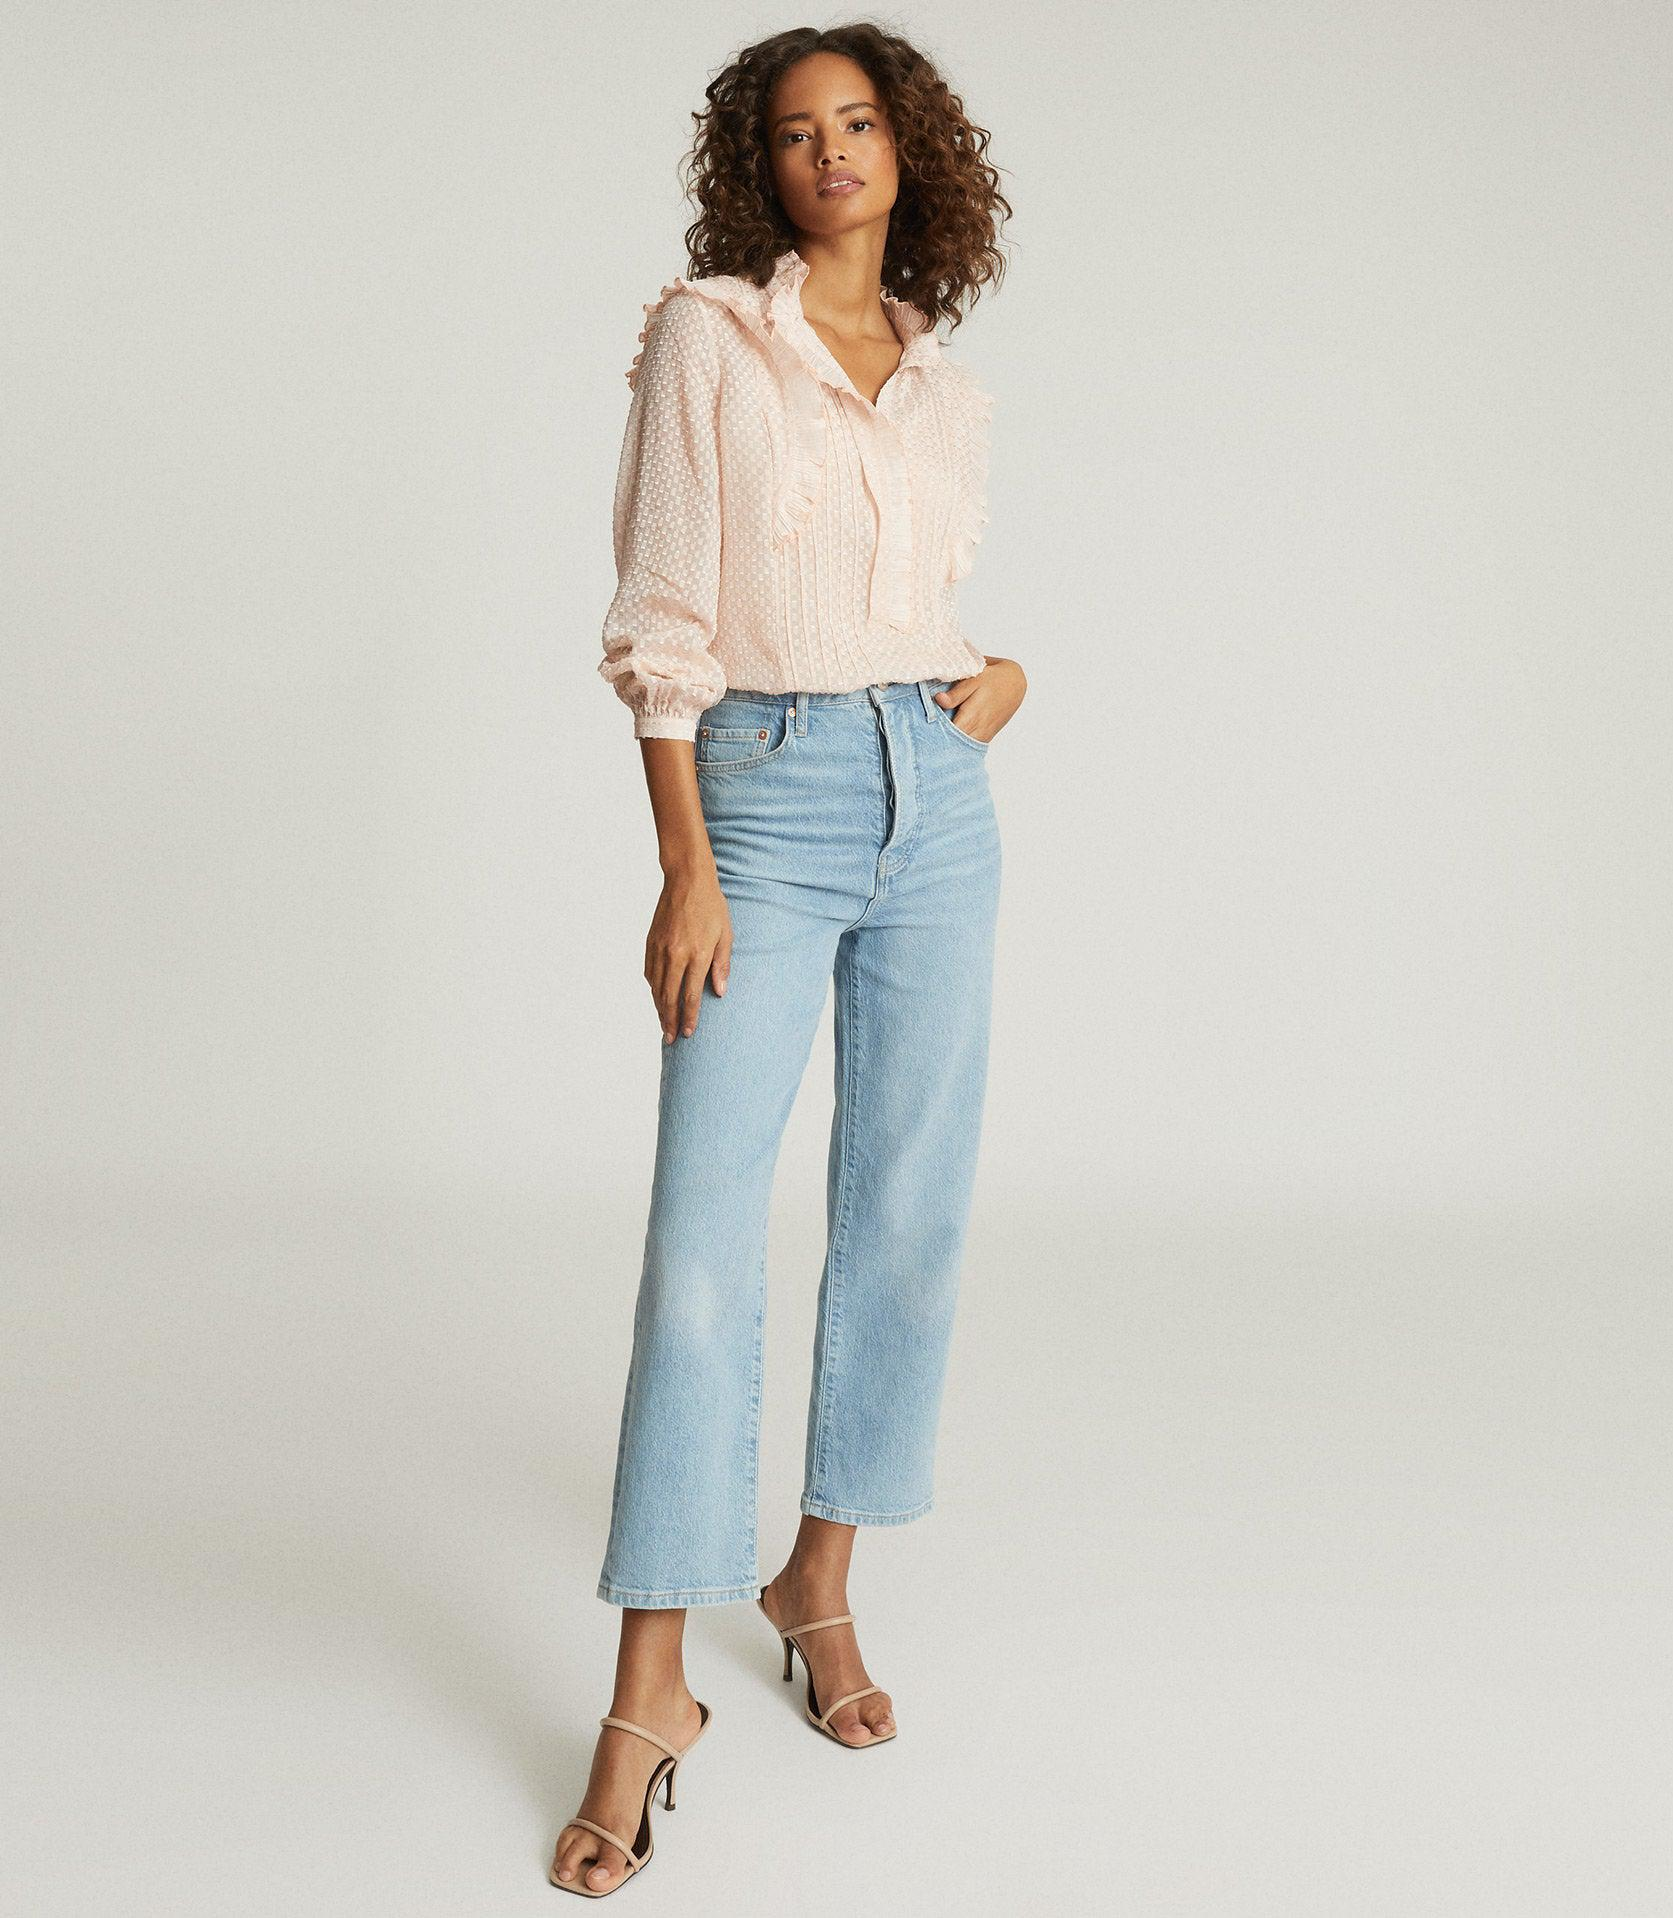 TAYLOR - RUFFLE DETAILED BLOUSE